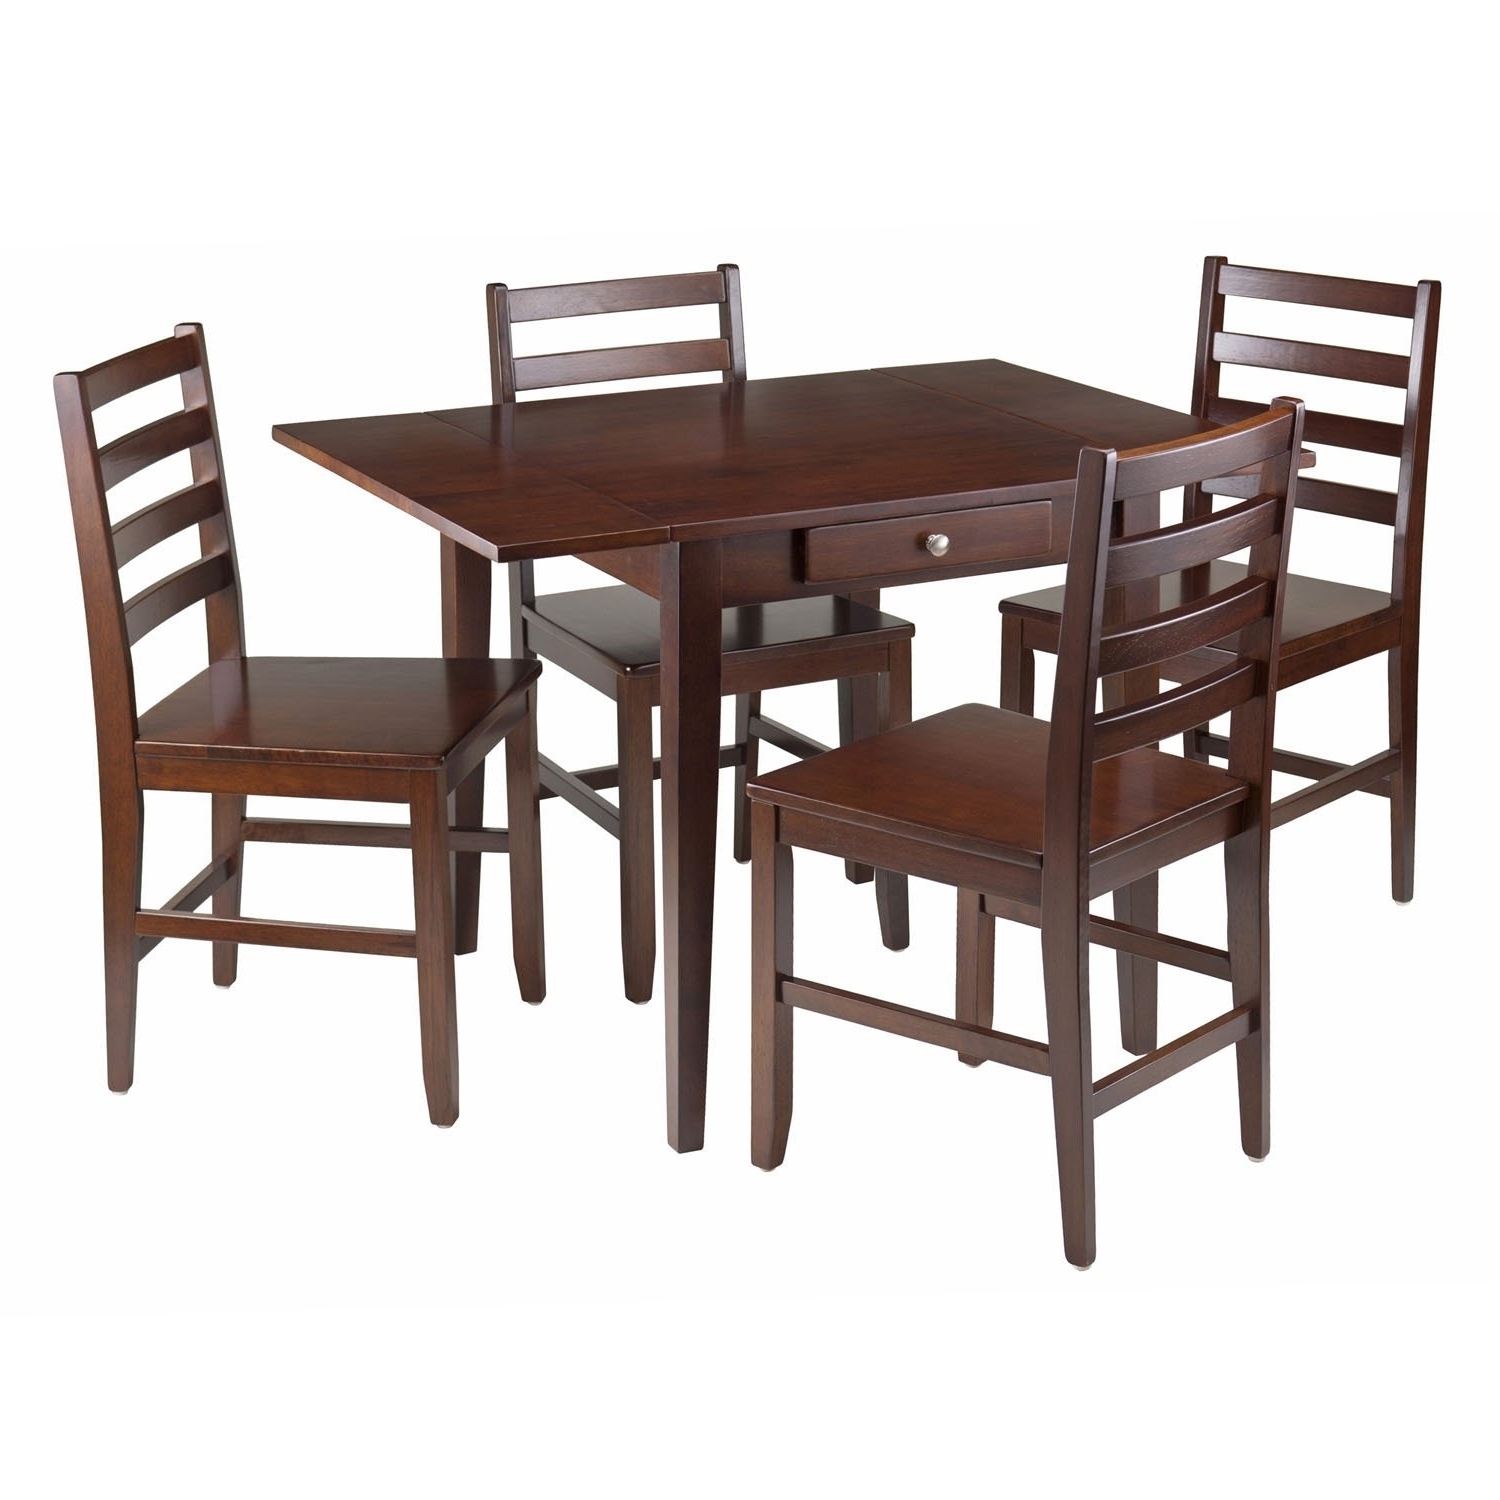 Hamilton Dining Tables For 2017 Hamilton 5 Pc Drop Leaf Dining Table With 4 Ladder Back Chairs (View 19 of 25)